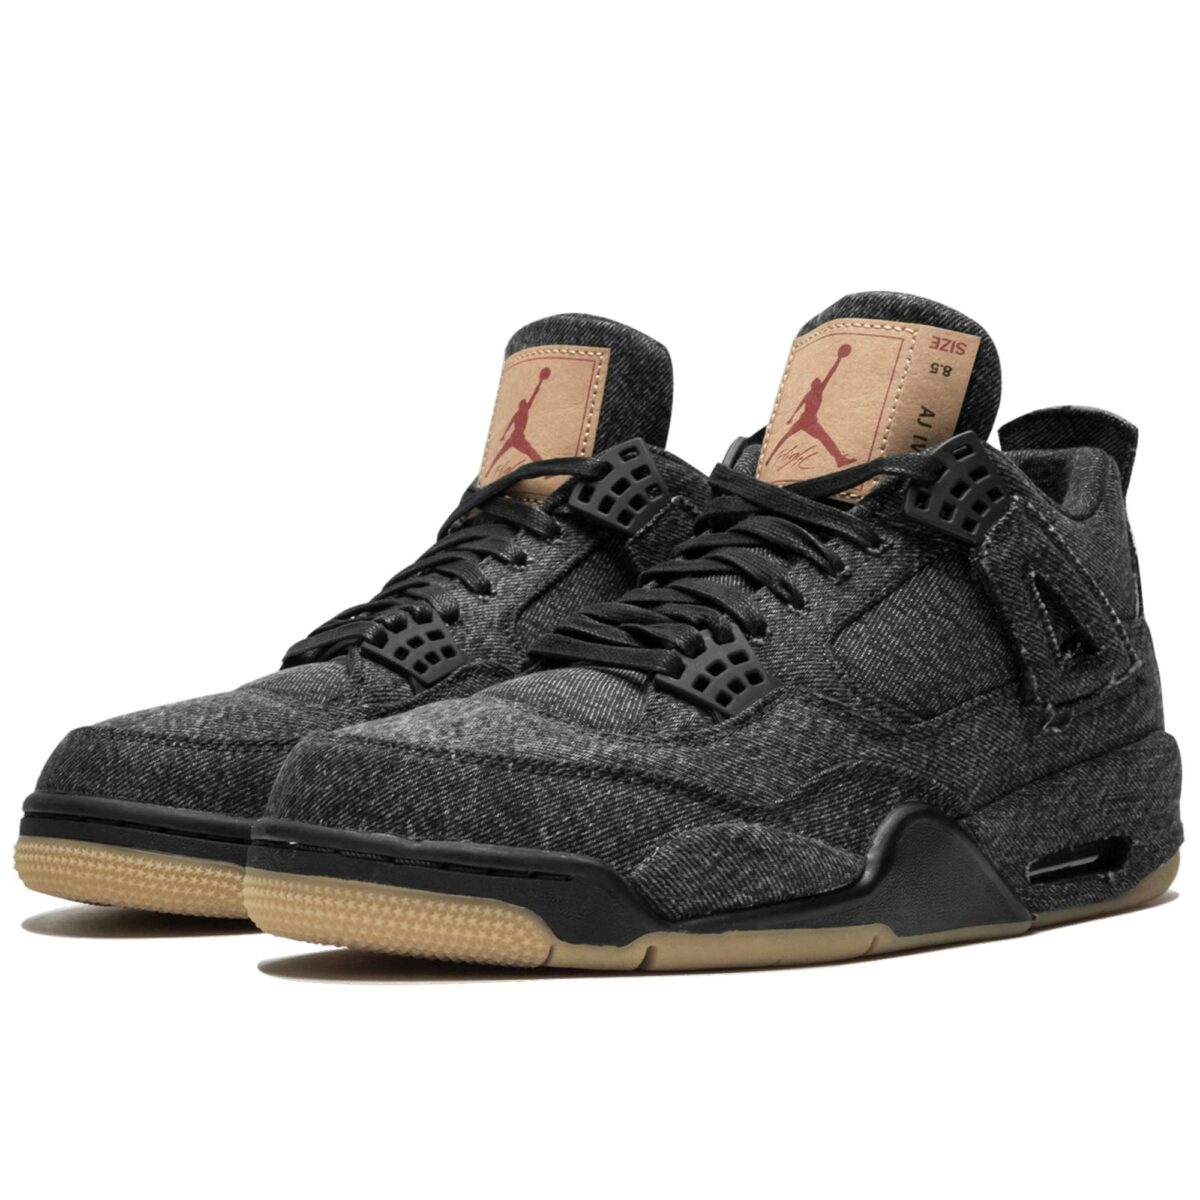 nike air Jordan 4 retro black levis NRG AO2571_001 купить